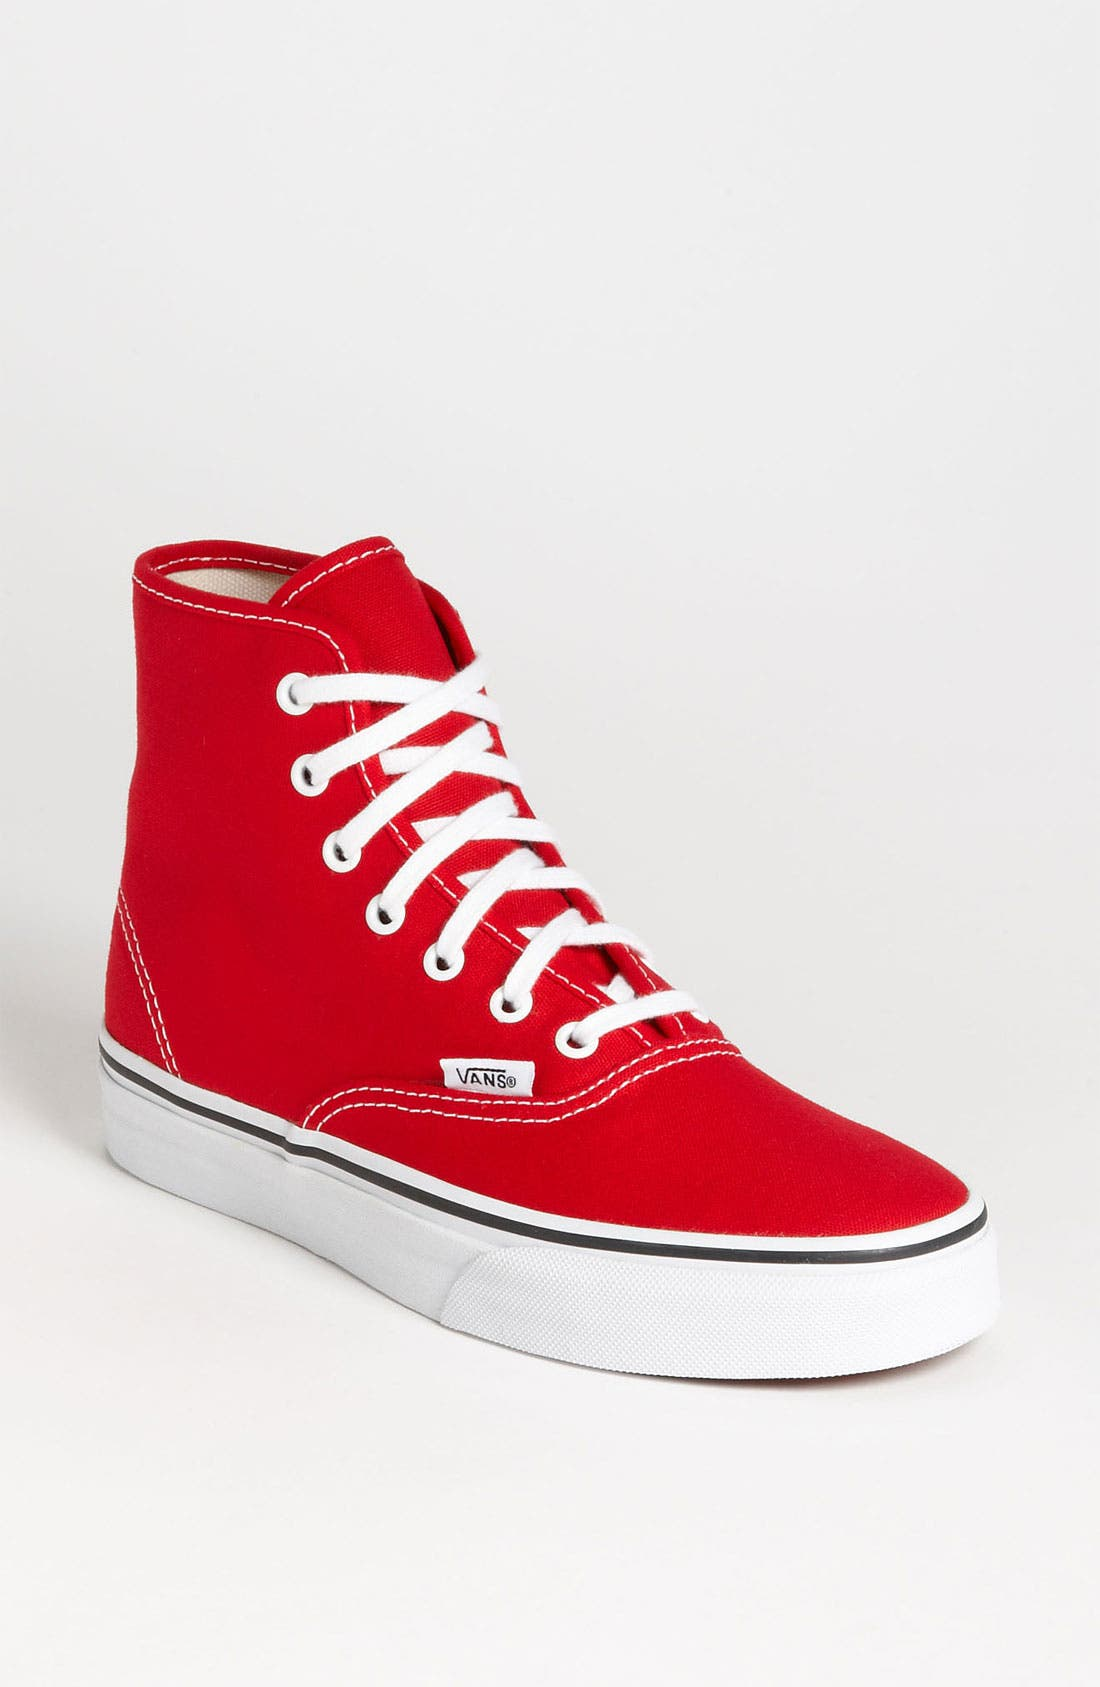 Main Image - Vans 'Authentic - Hi' Sneaker (Women)